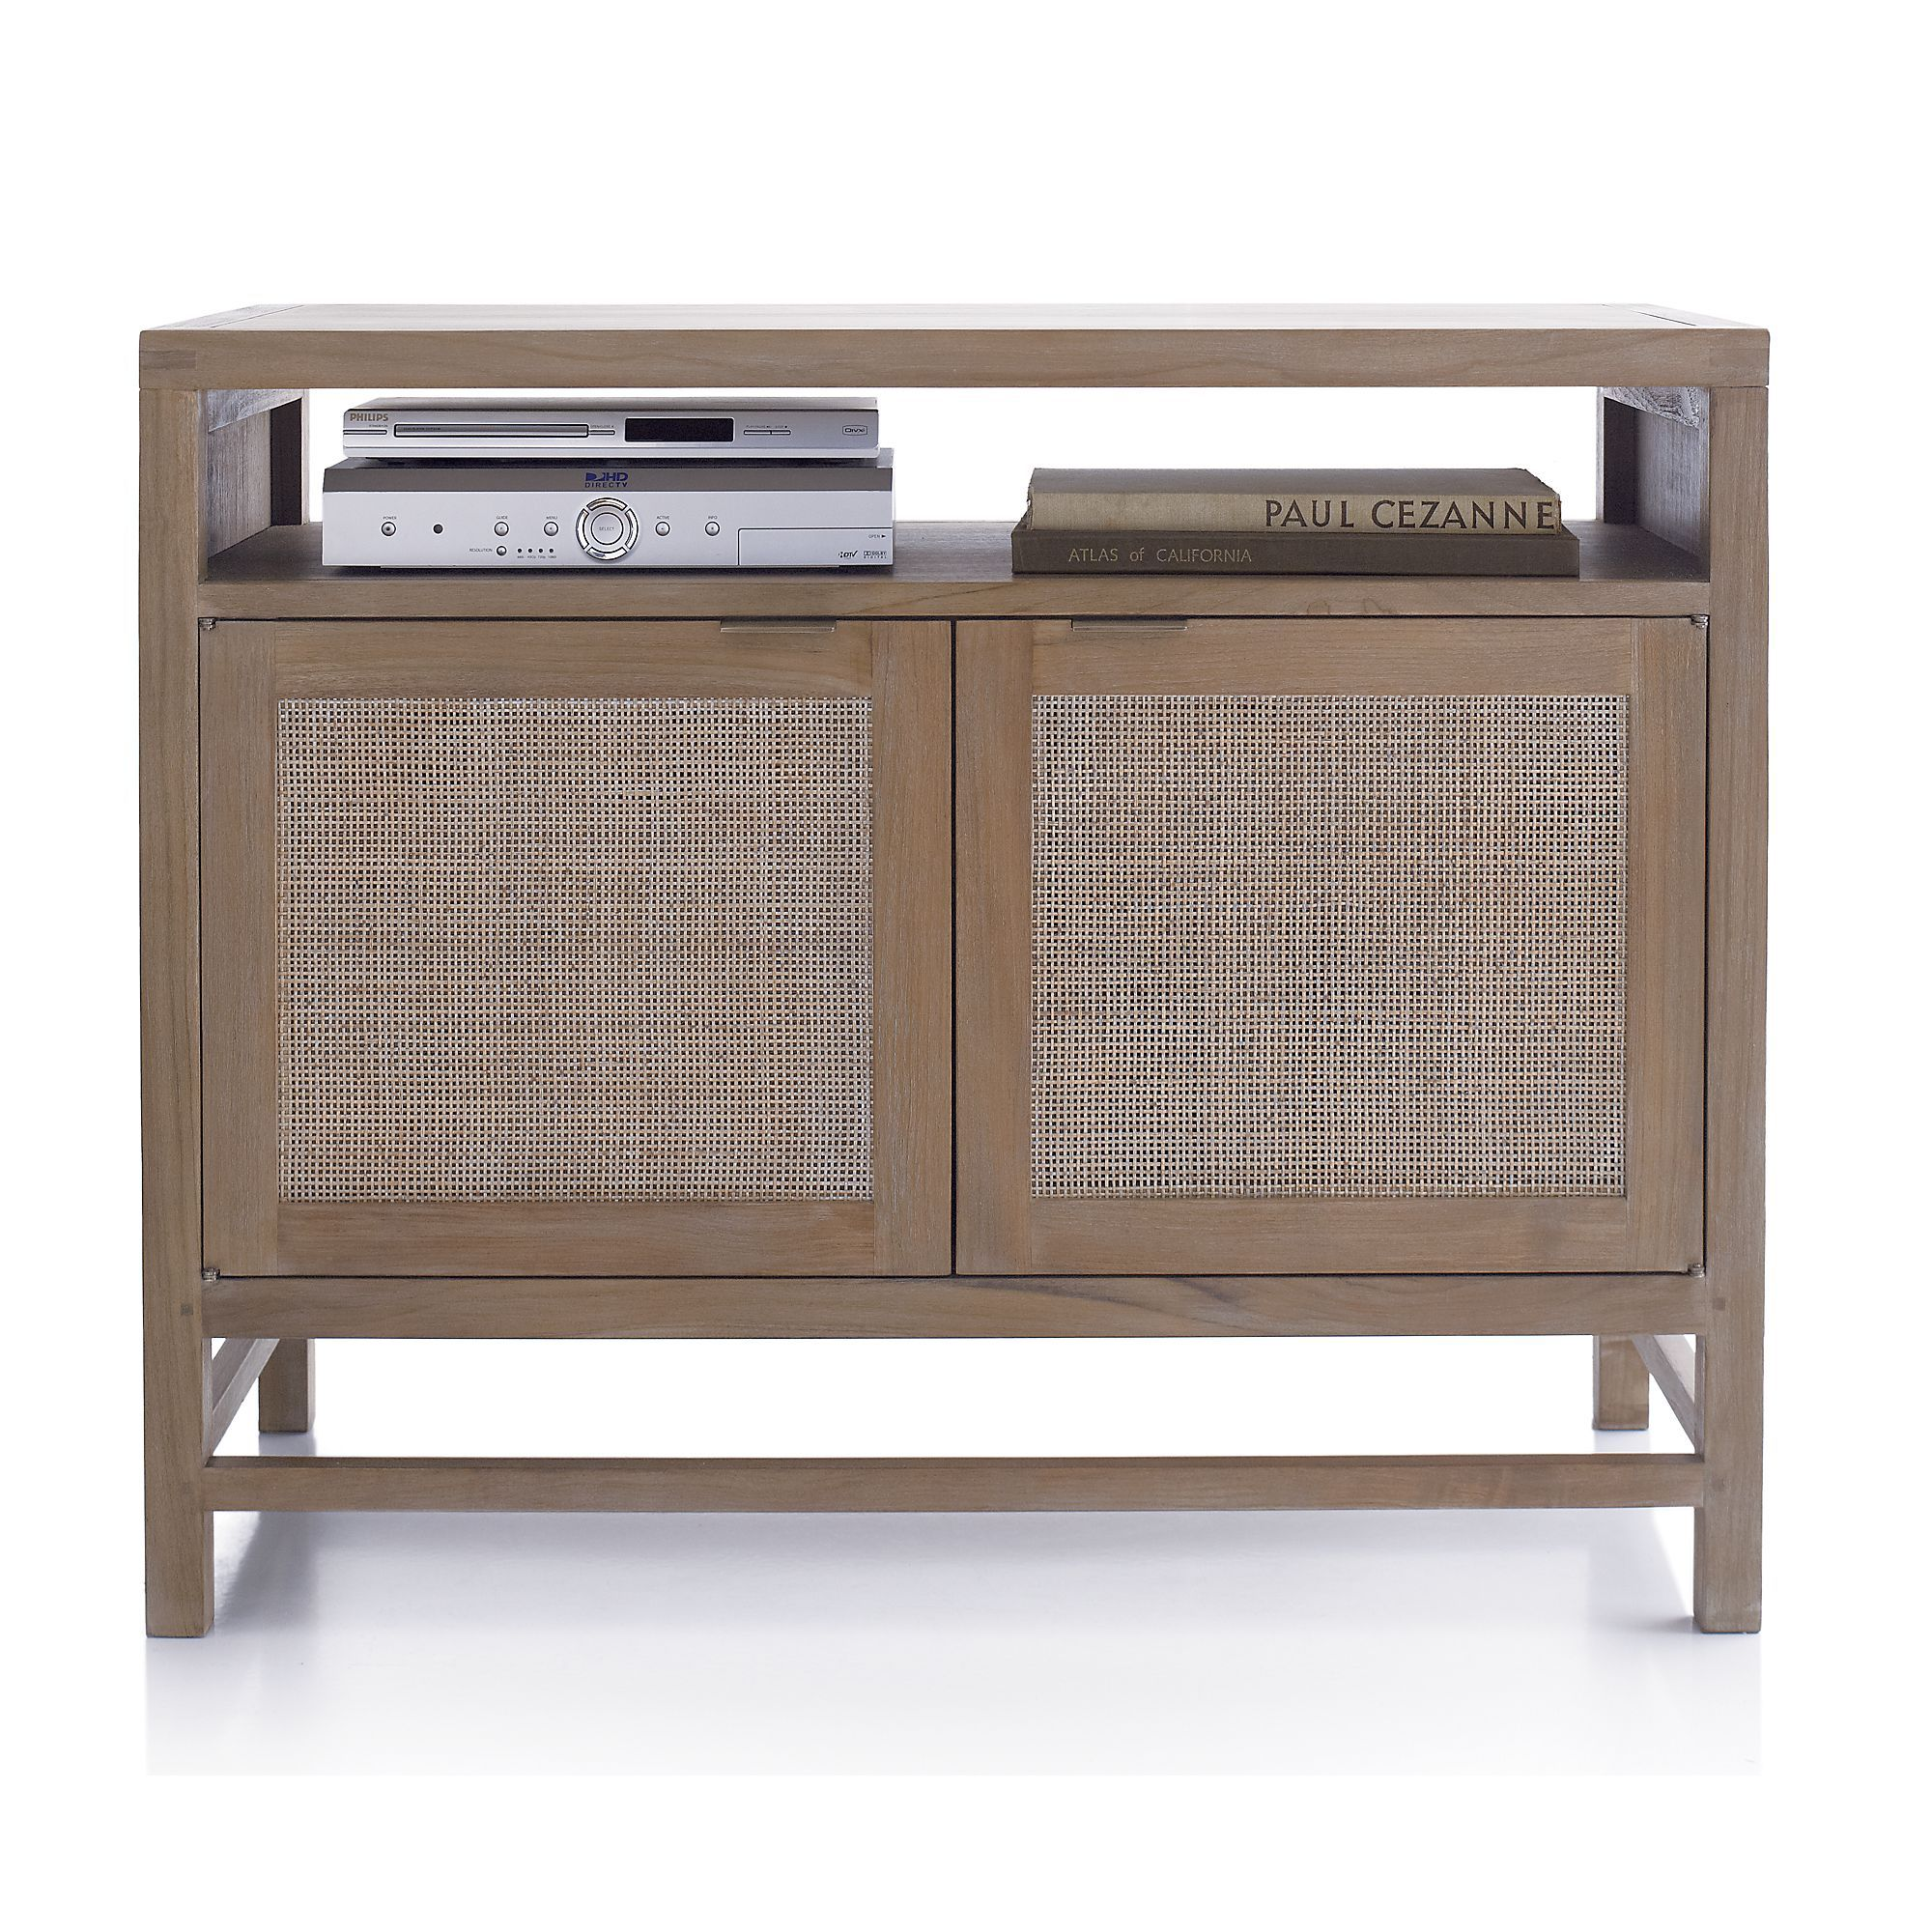 Blake grey wash 42 media console crate and barrel living room blake grey wash 42 media console crate and barrel geotapseo Choice Image